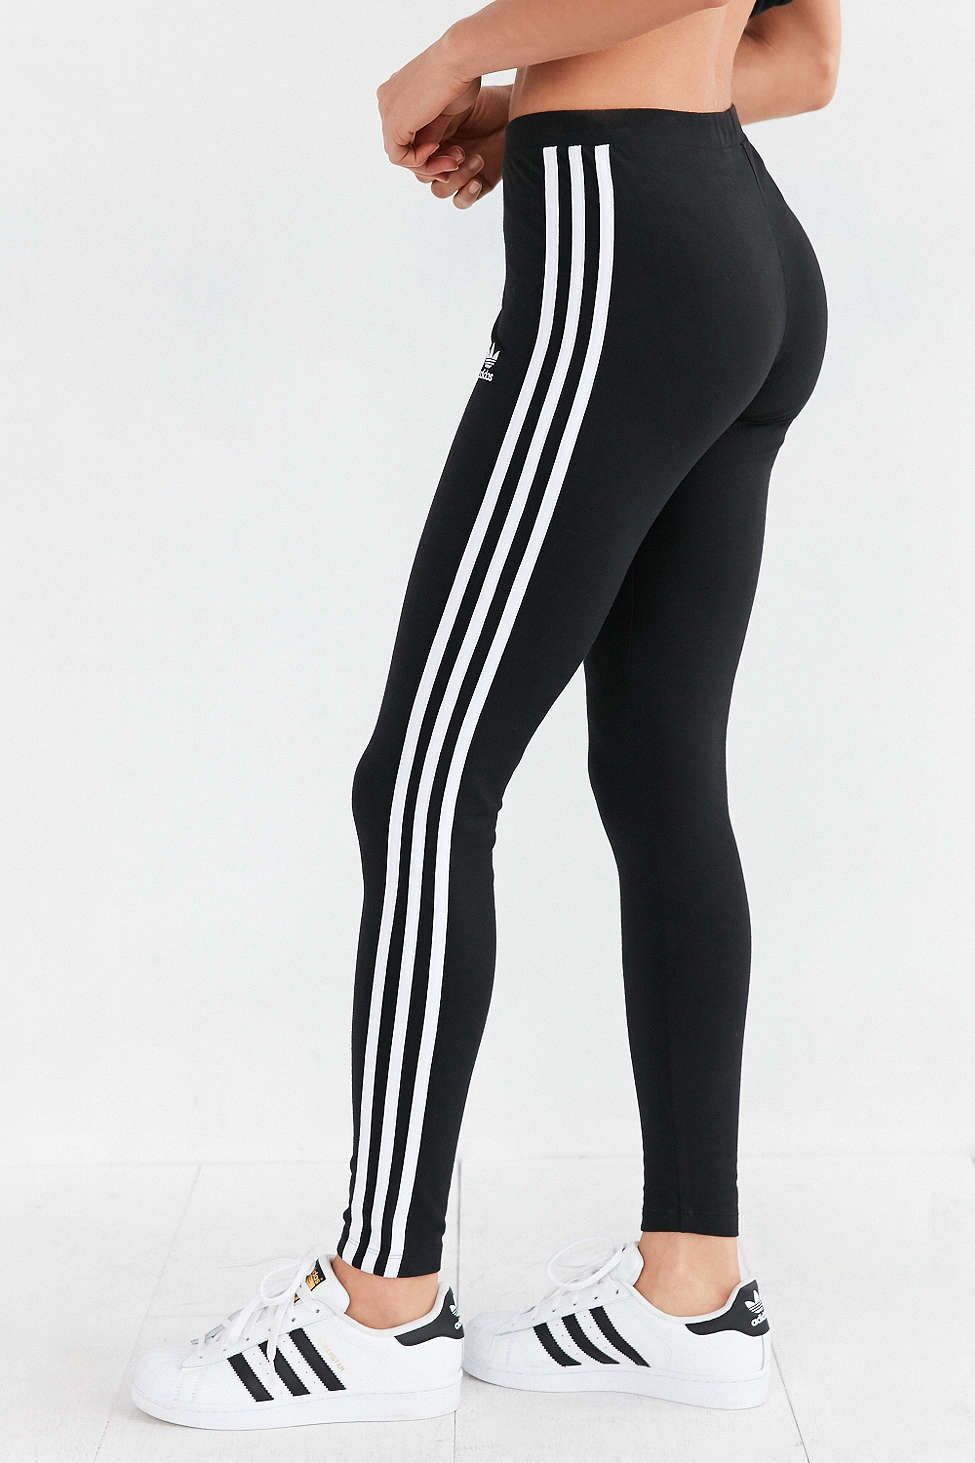 655947f5e962 adidas Originals 3 Stripes Legging - Urban Outfitters